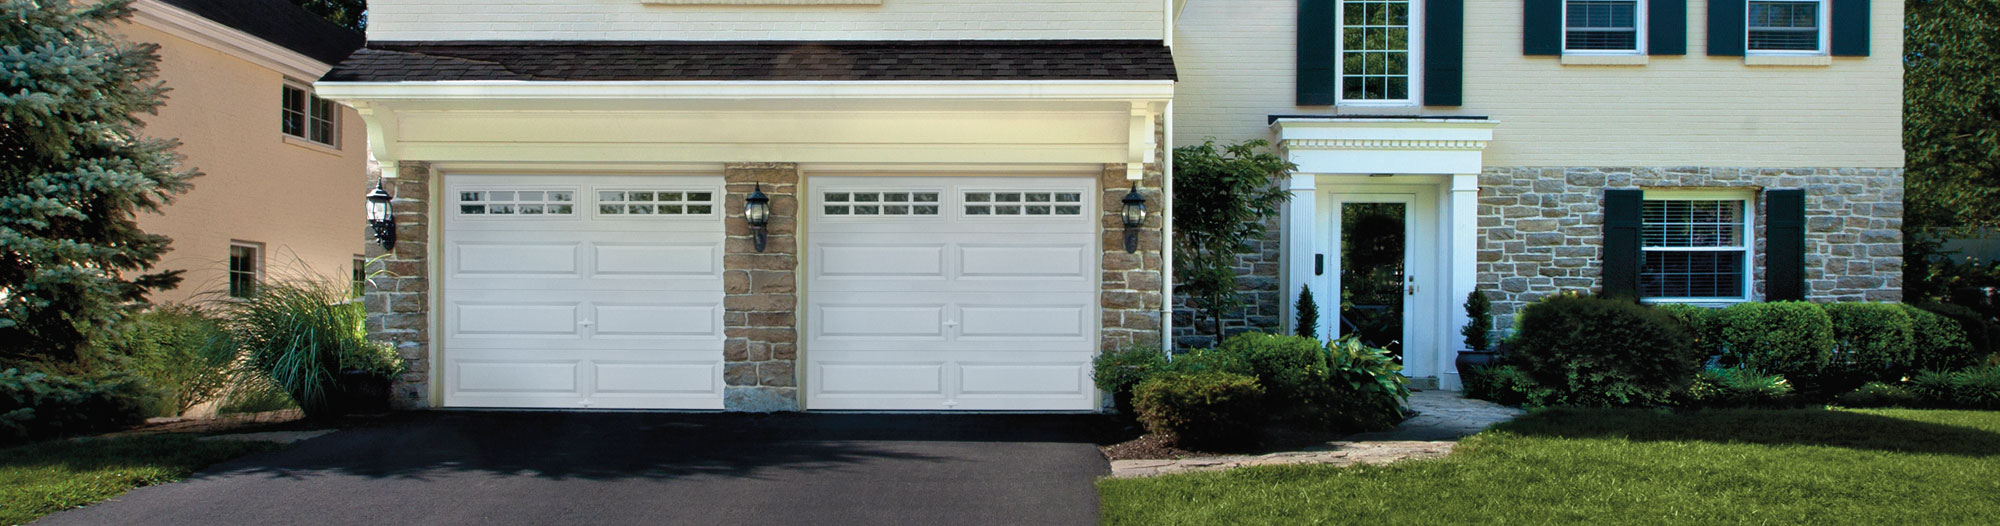 Garage Door Replacement   We Sell The Best And Service The Rest!